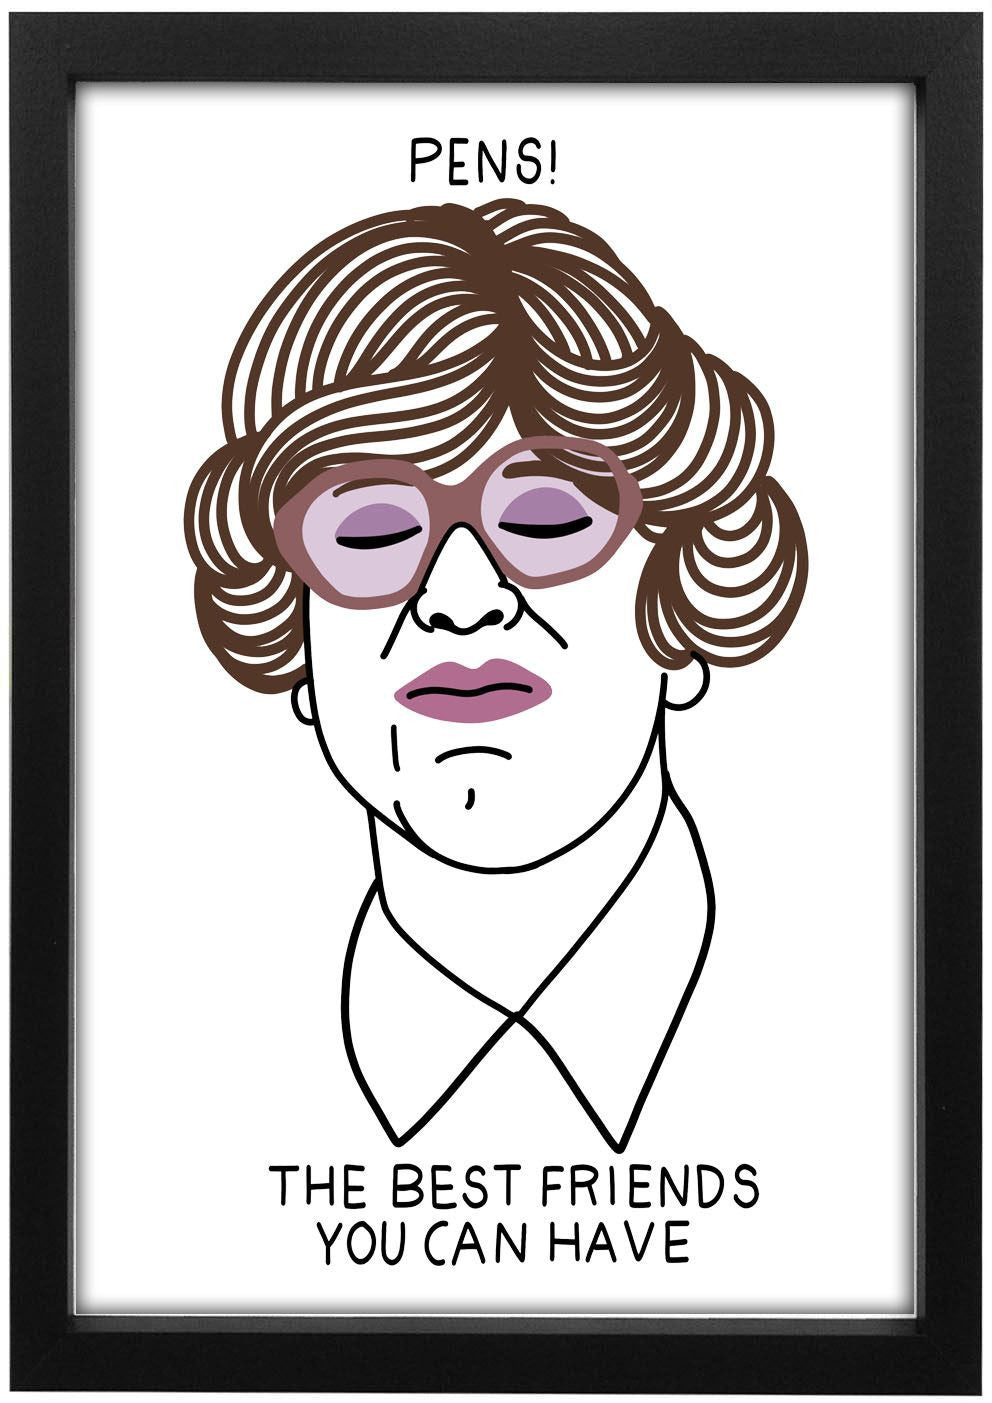 League Of Gentlemen - Pauline Pens Art Print - Jiggle Apparel